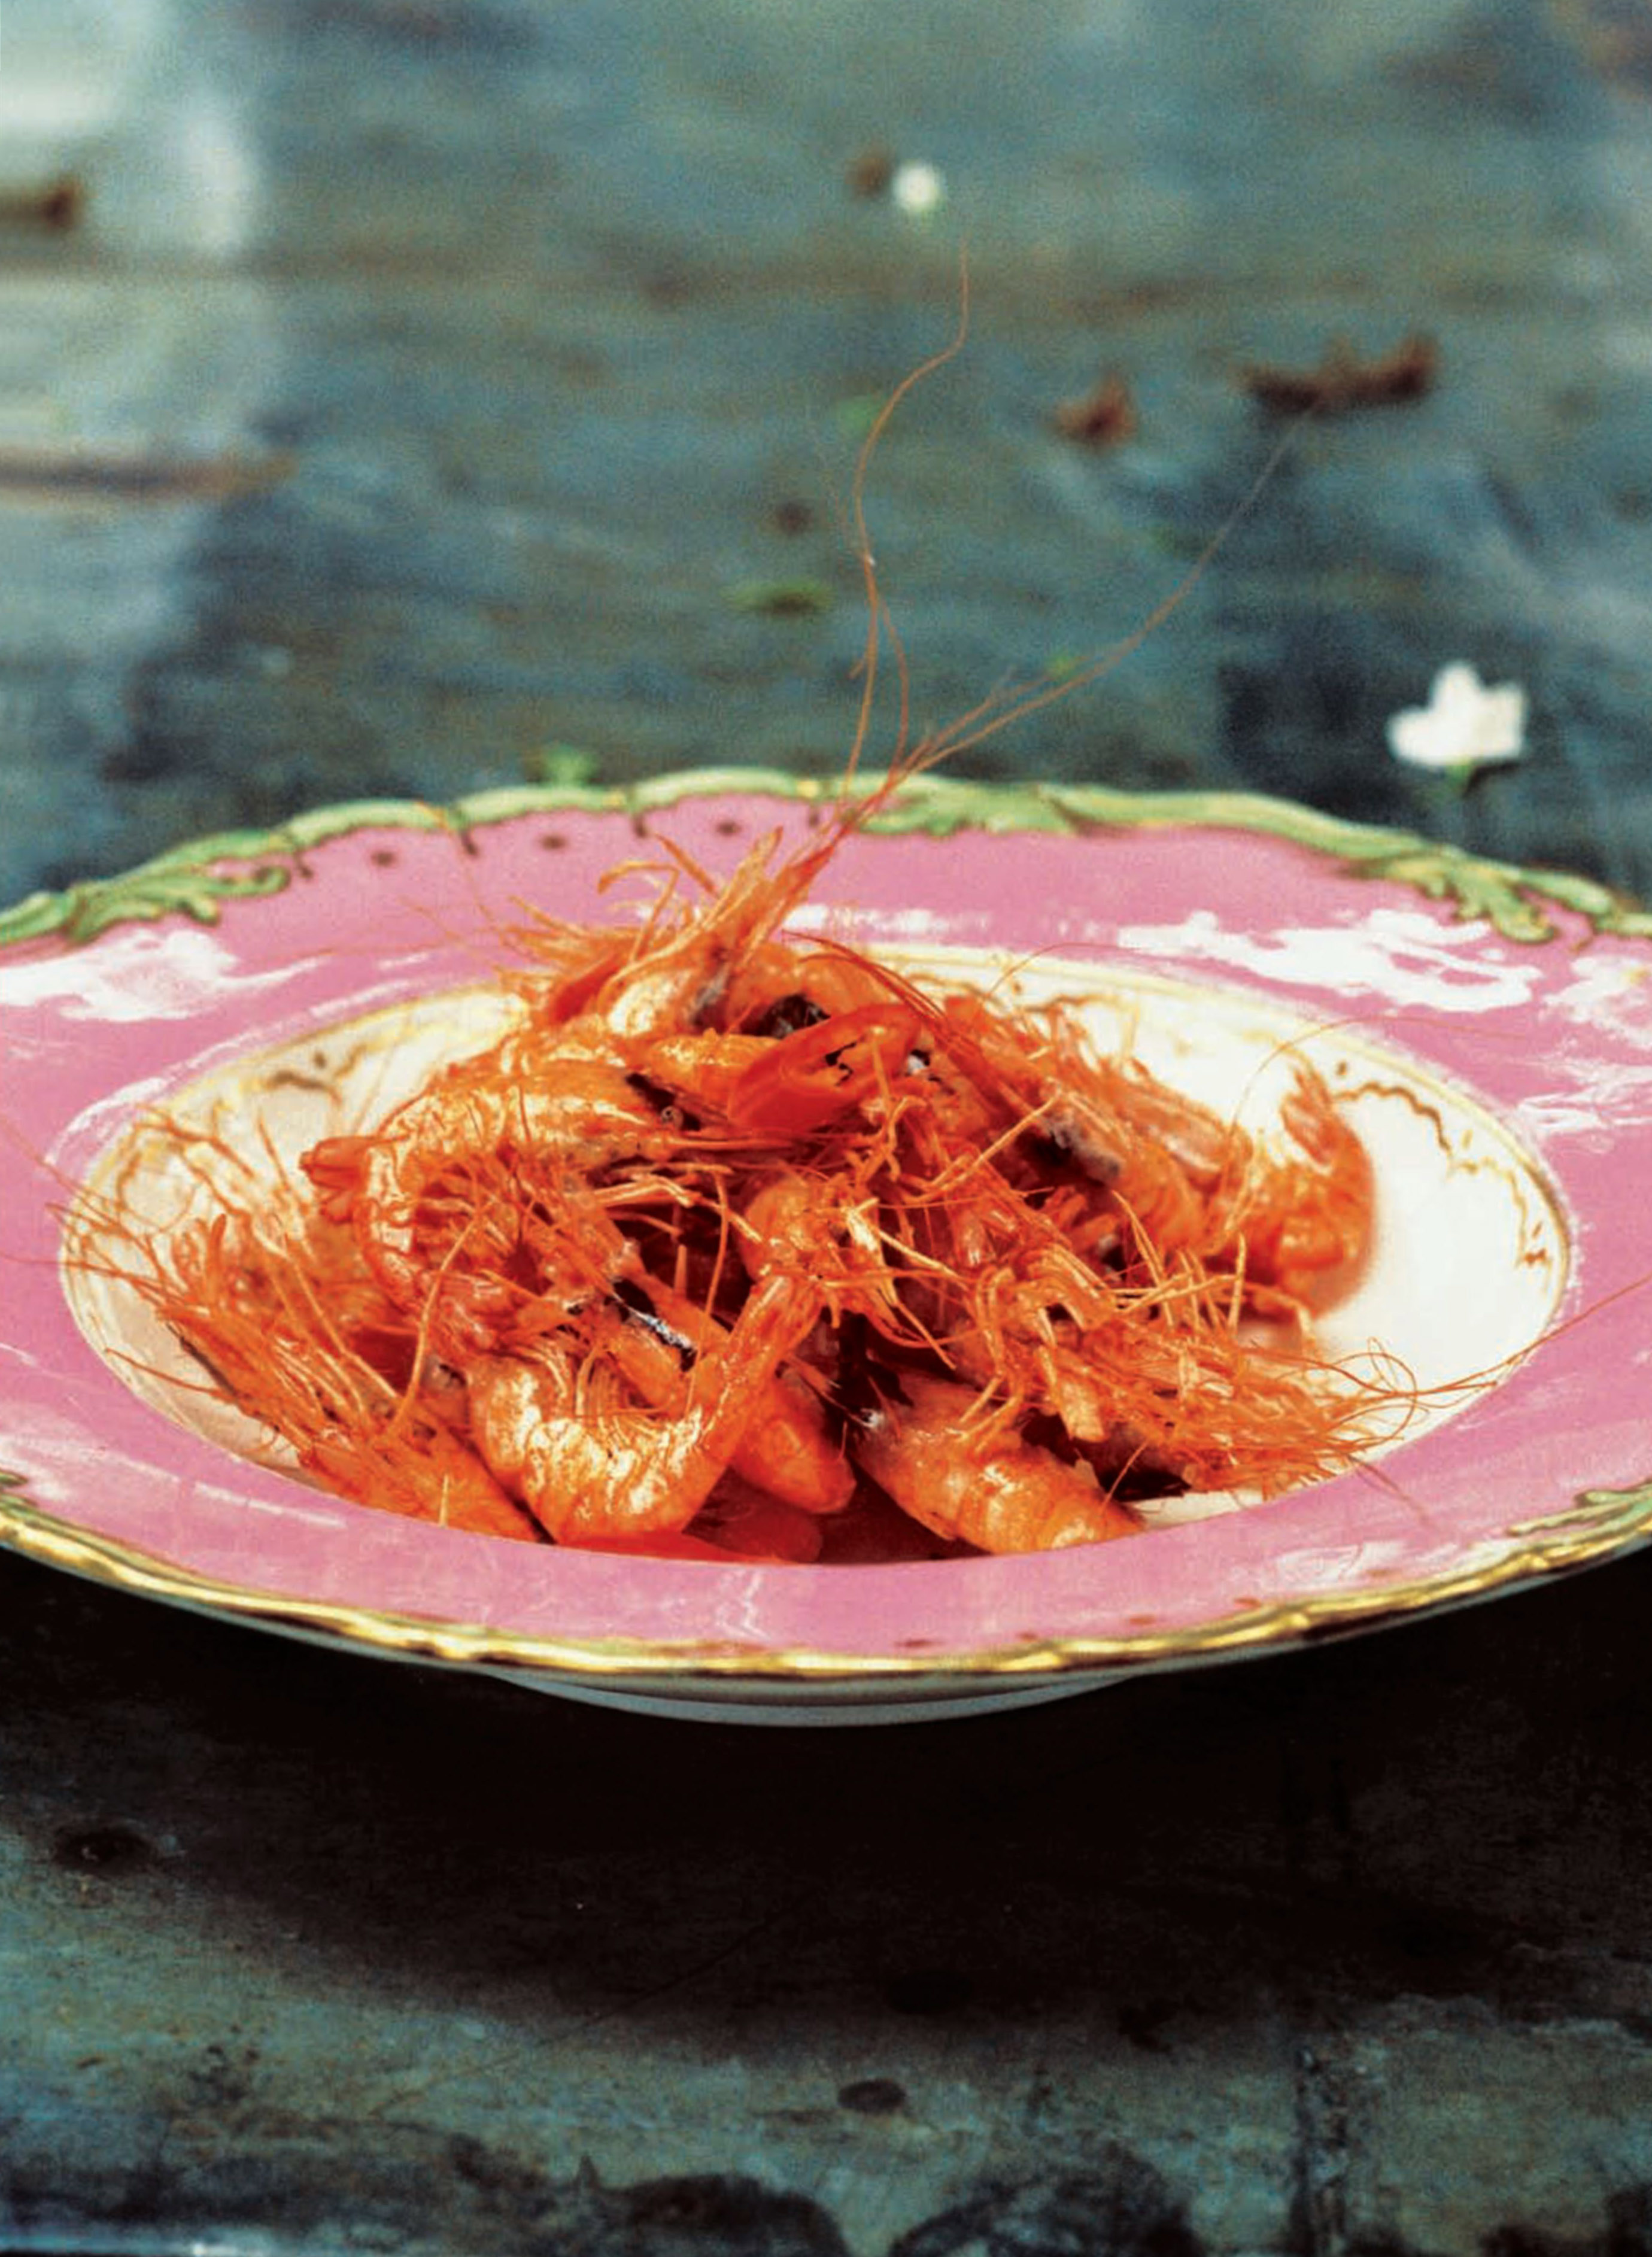 Poole prawns with chilli, salt and lemon